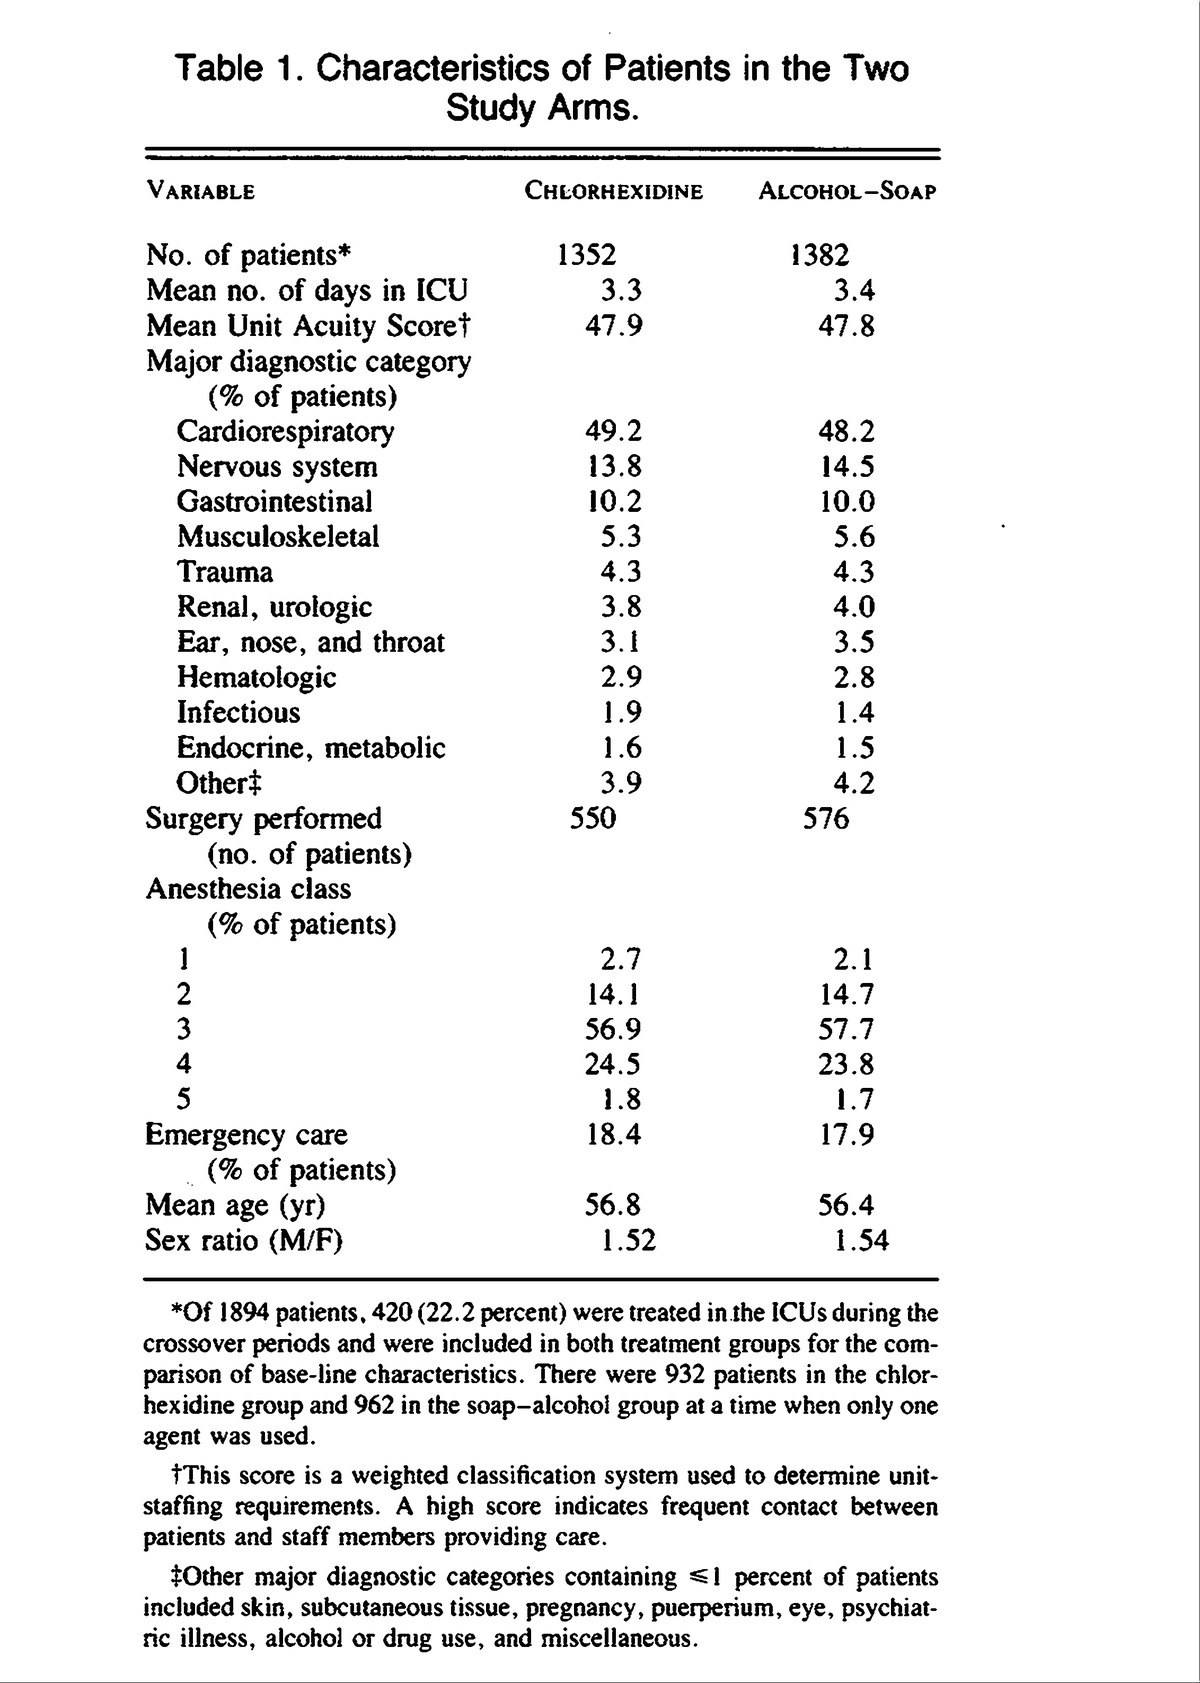 Table 1 Characteristics Of Patients In The Two Study Arms 2